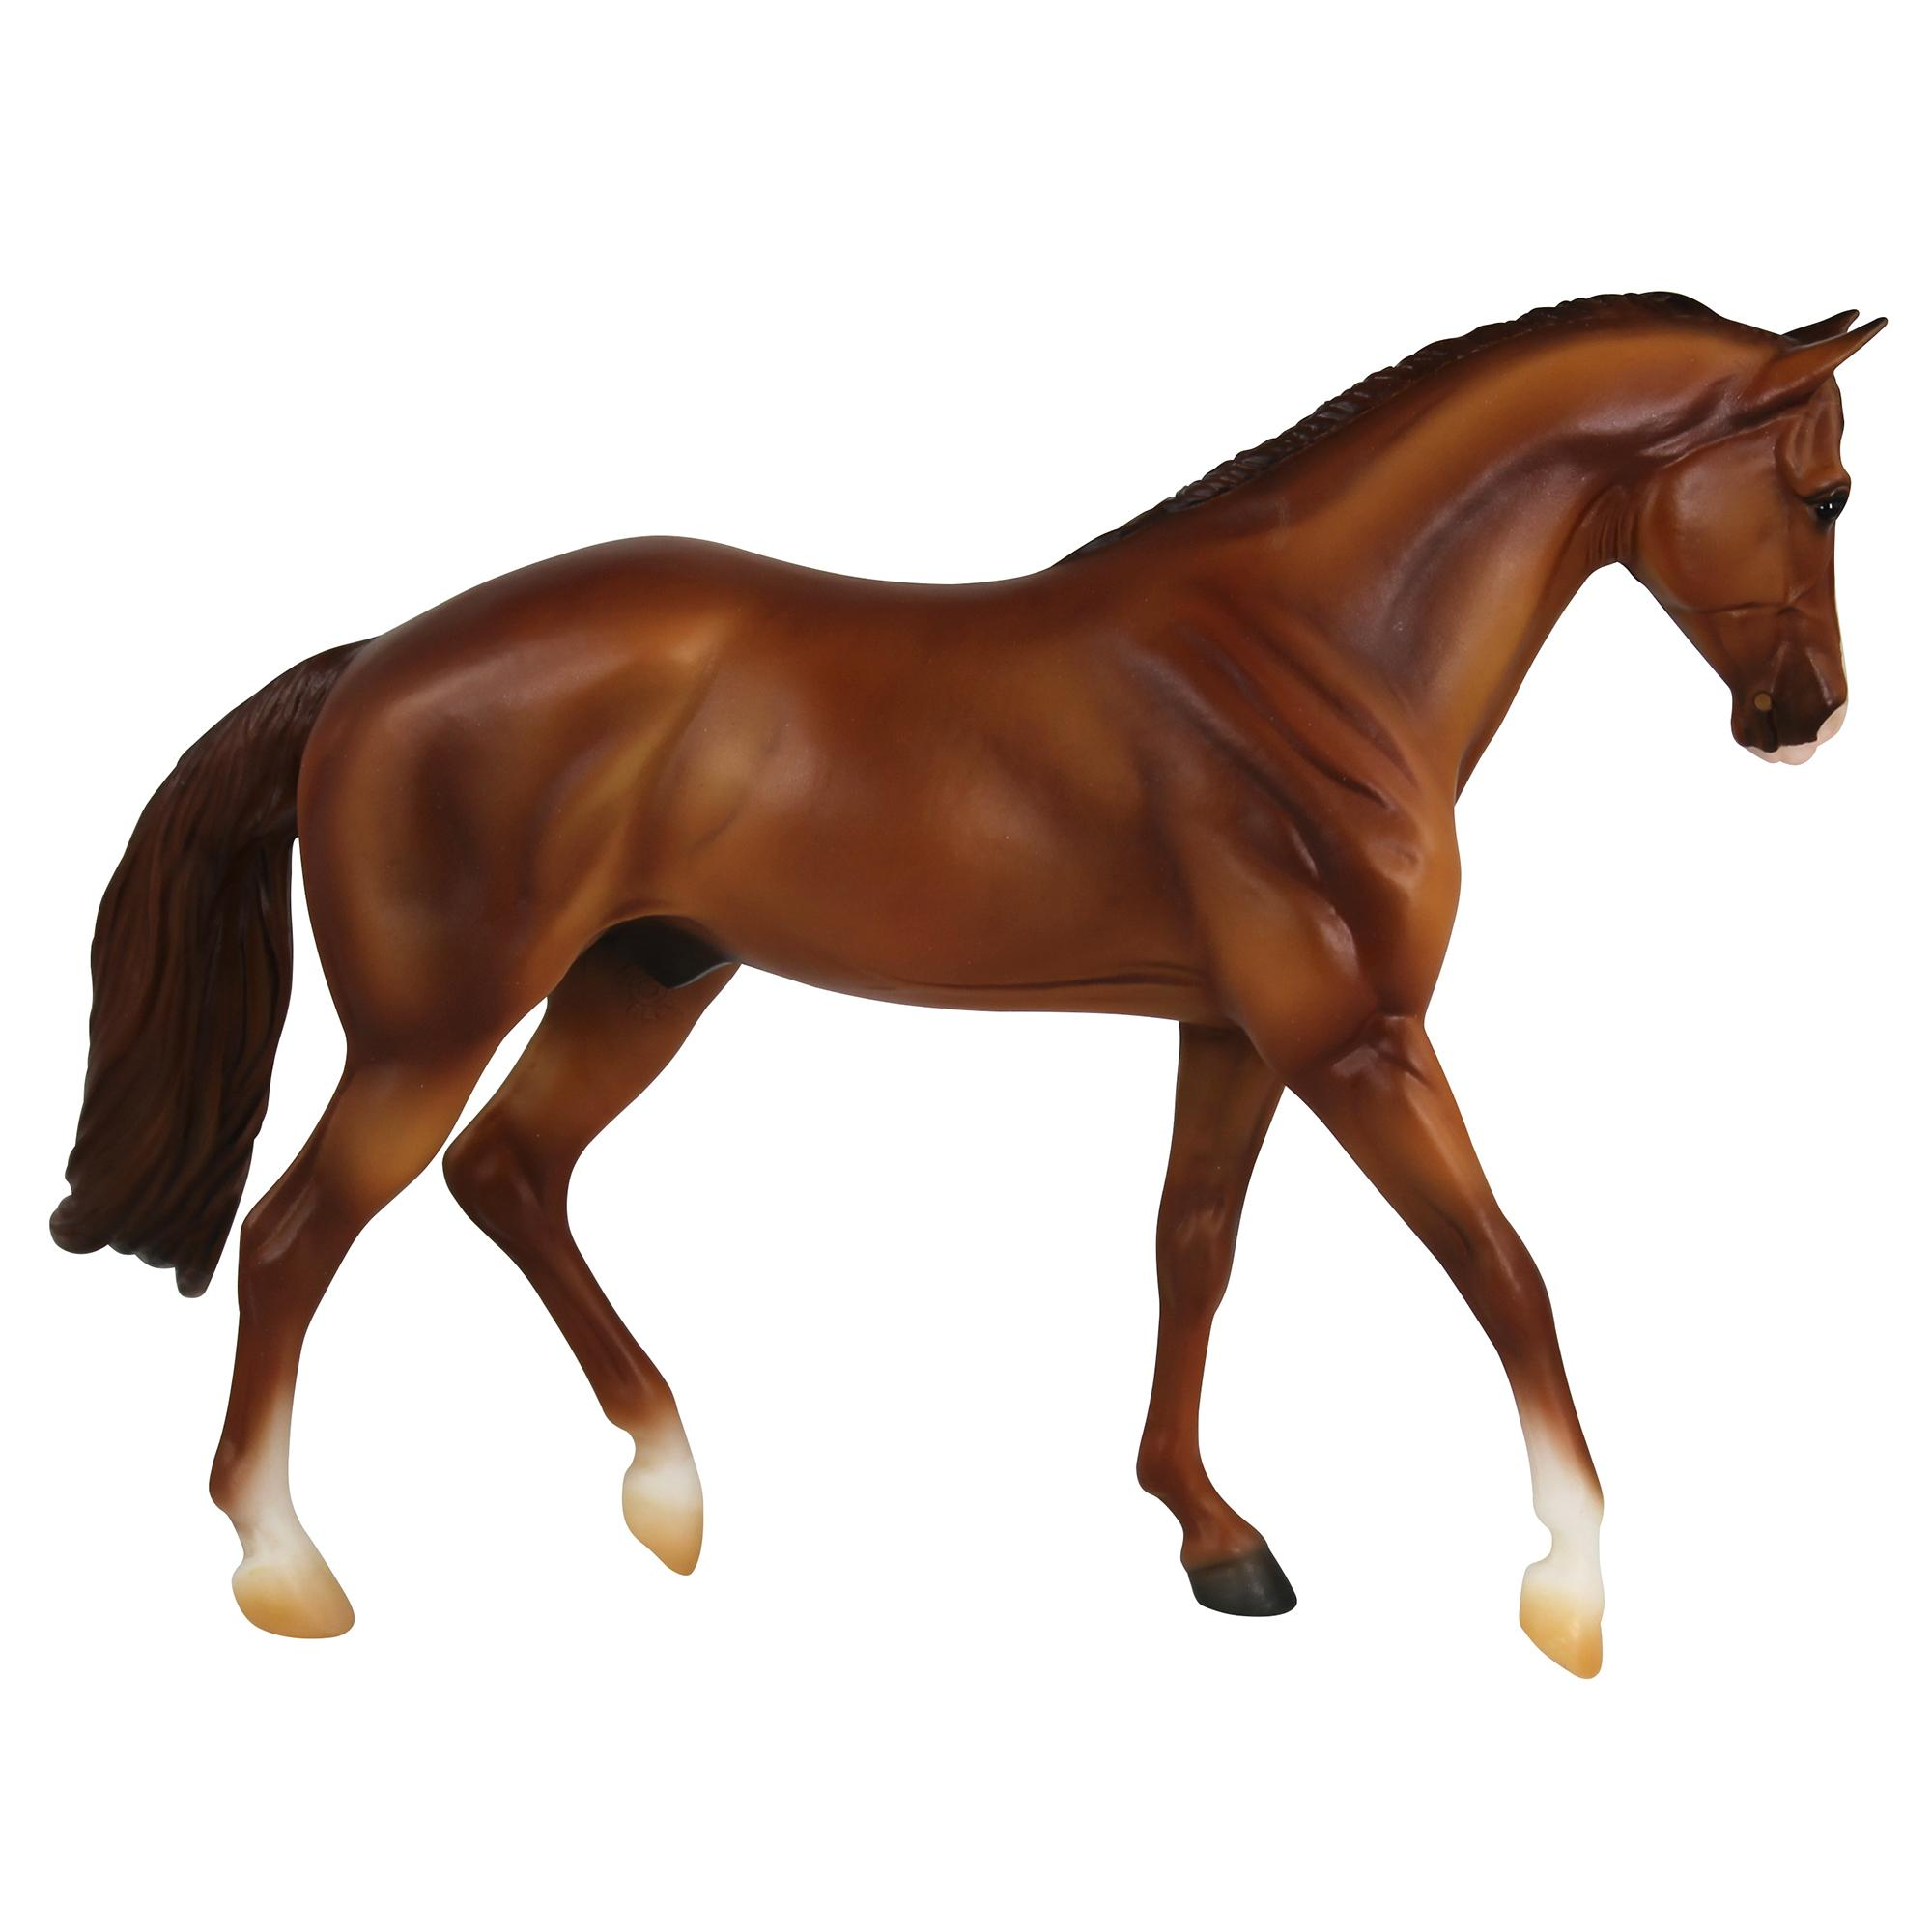 2000x2000 Breyer Chestnut Quarter Horse